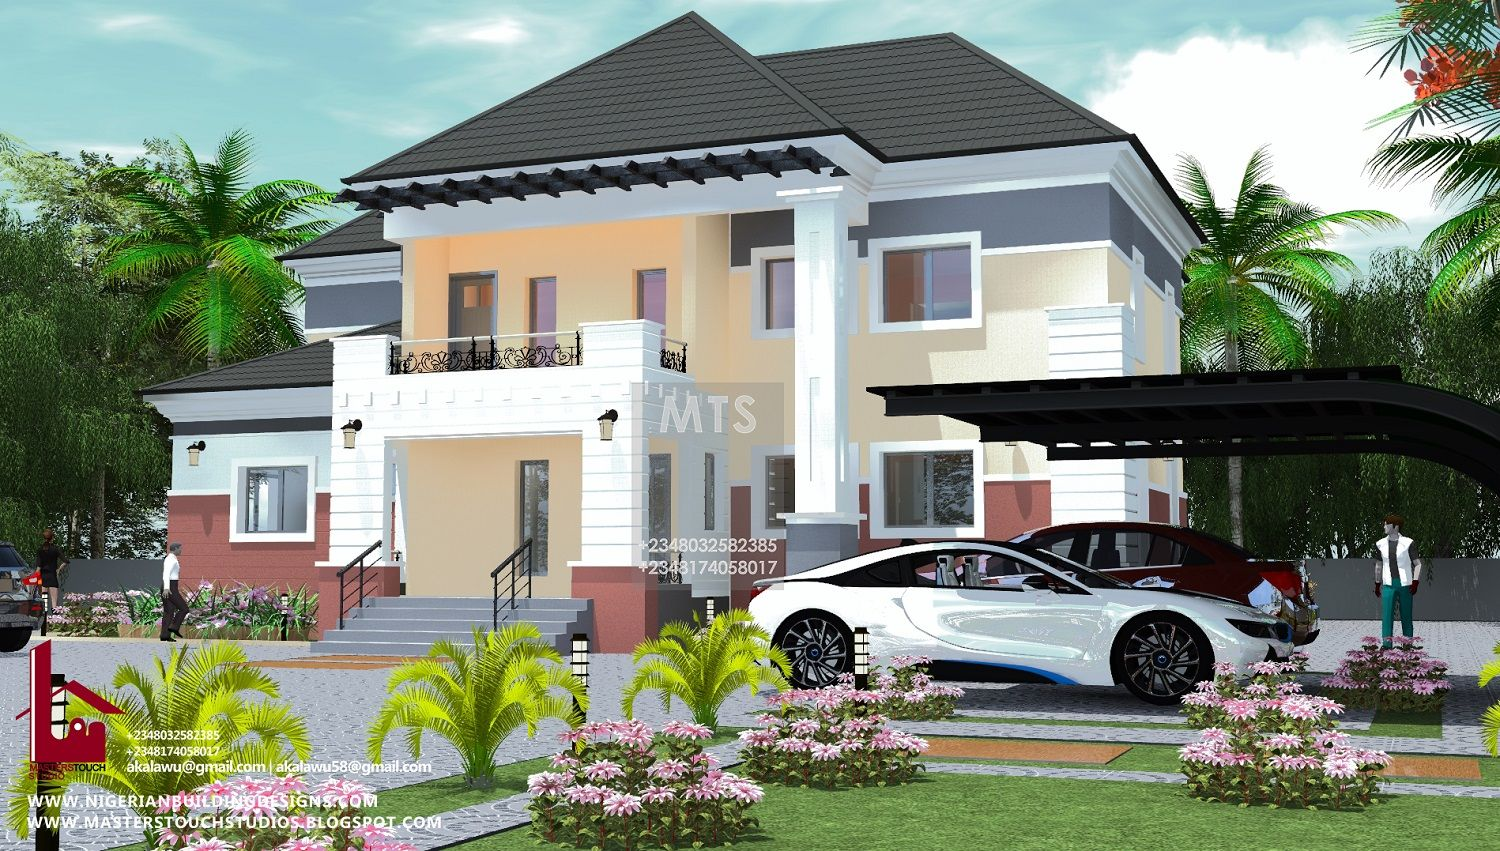 4 Bedroom Duplex Archives Duplex Design Row House Design House Plan Gallery